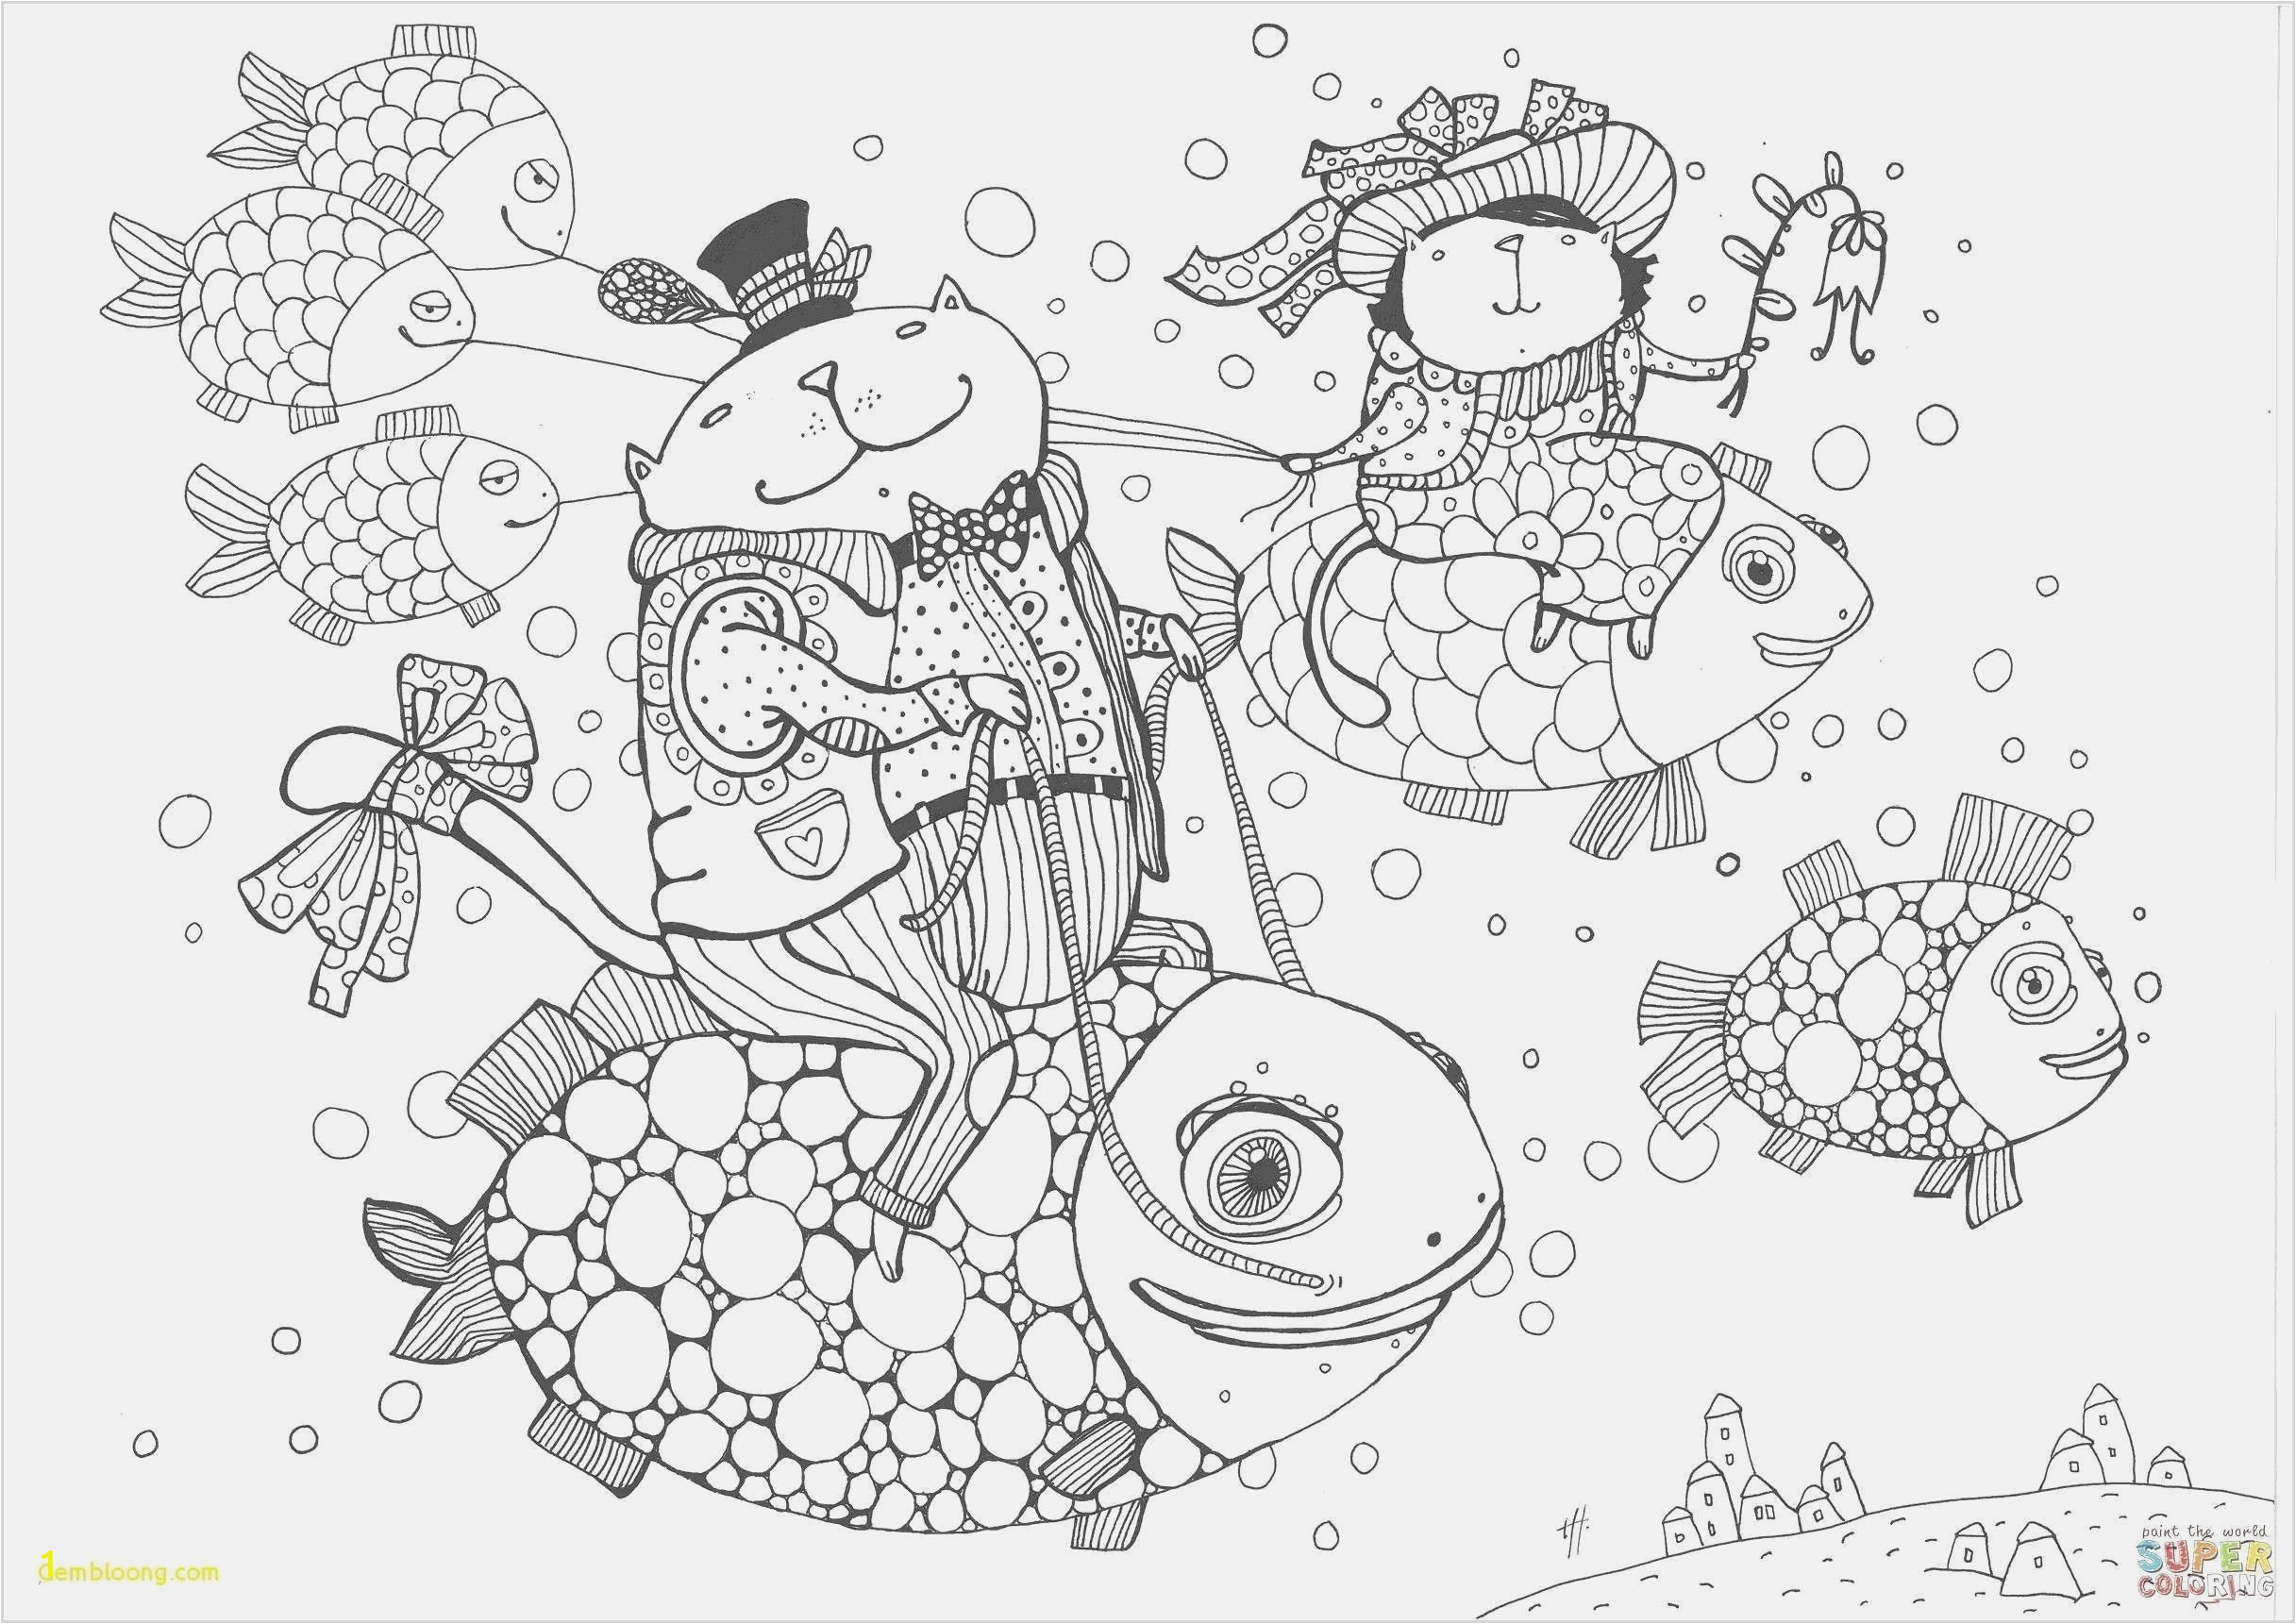 adult coloring sports book lego halloween pages butterfly for preschool easy girls valentine toddlers spongebob happy birthday sheet bendonpub books palace page misfits advent animal